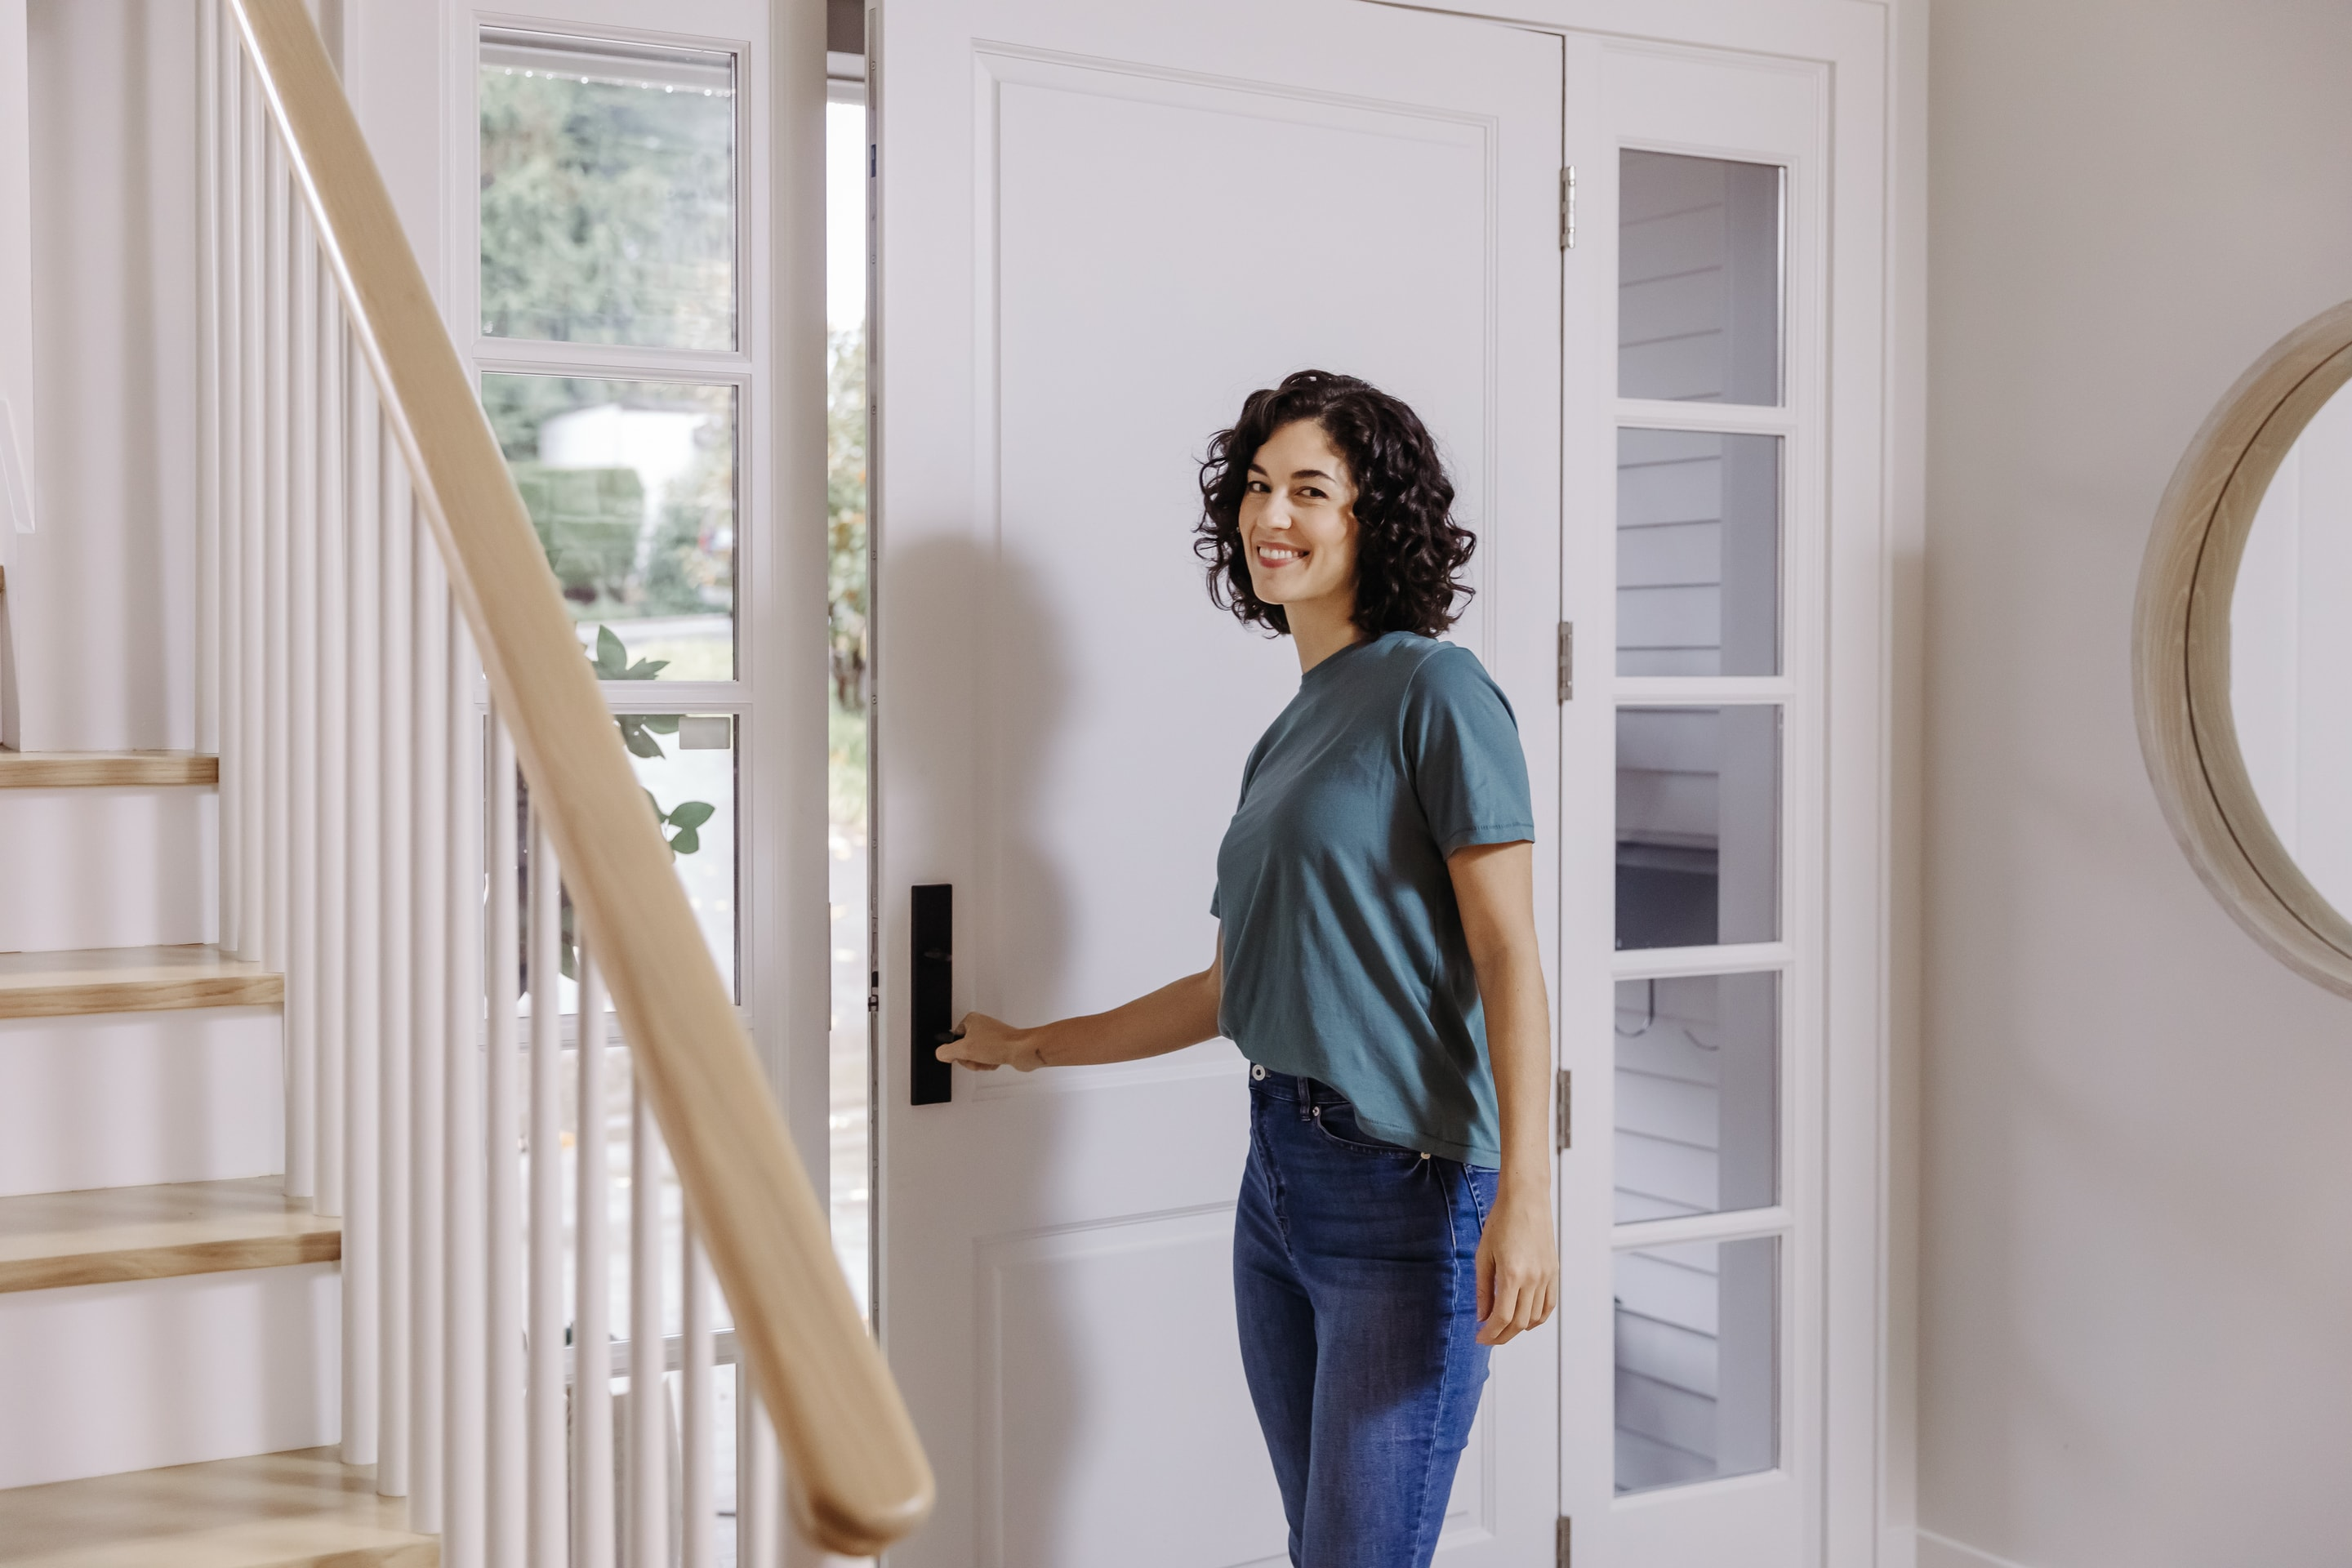 Direct Sales Consultant leaving the house